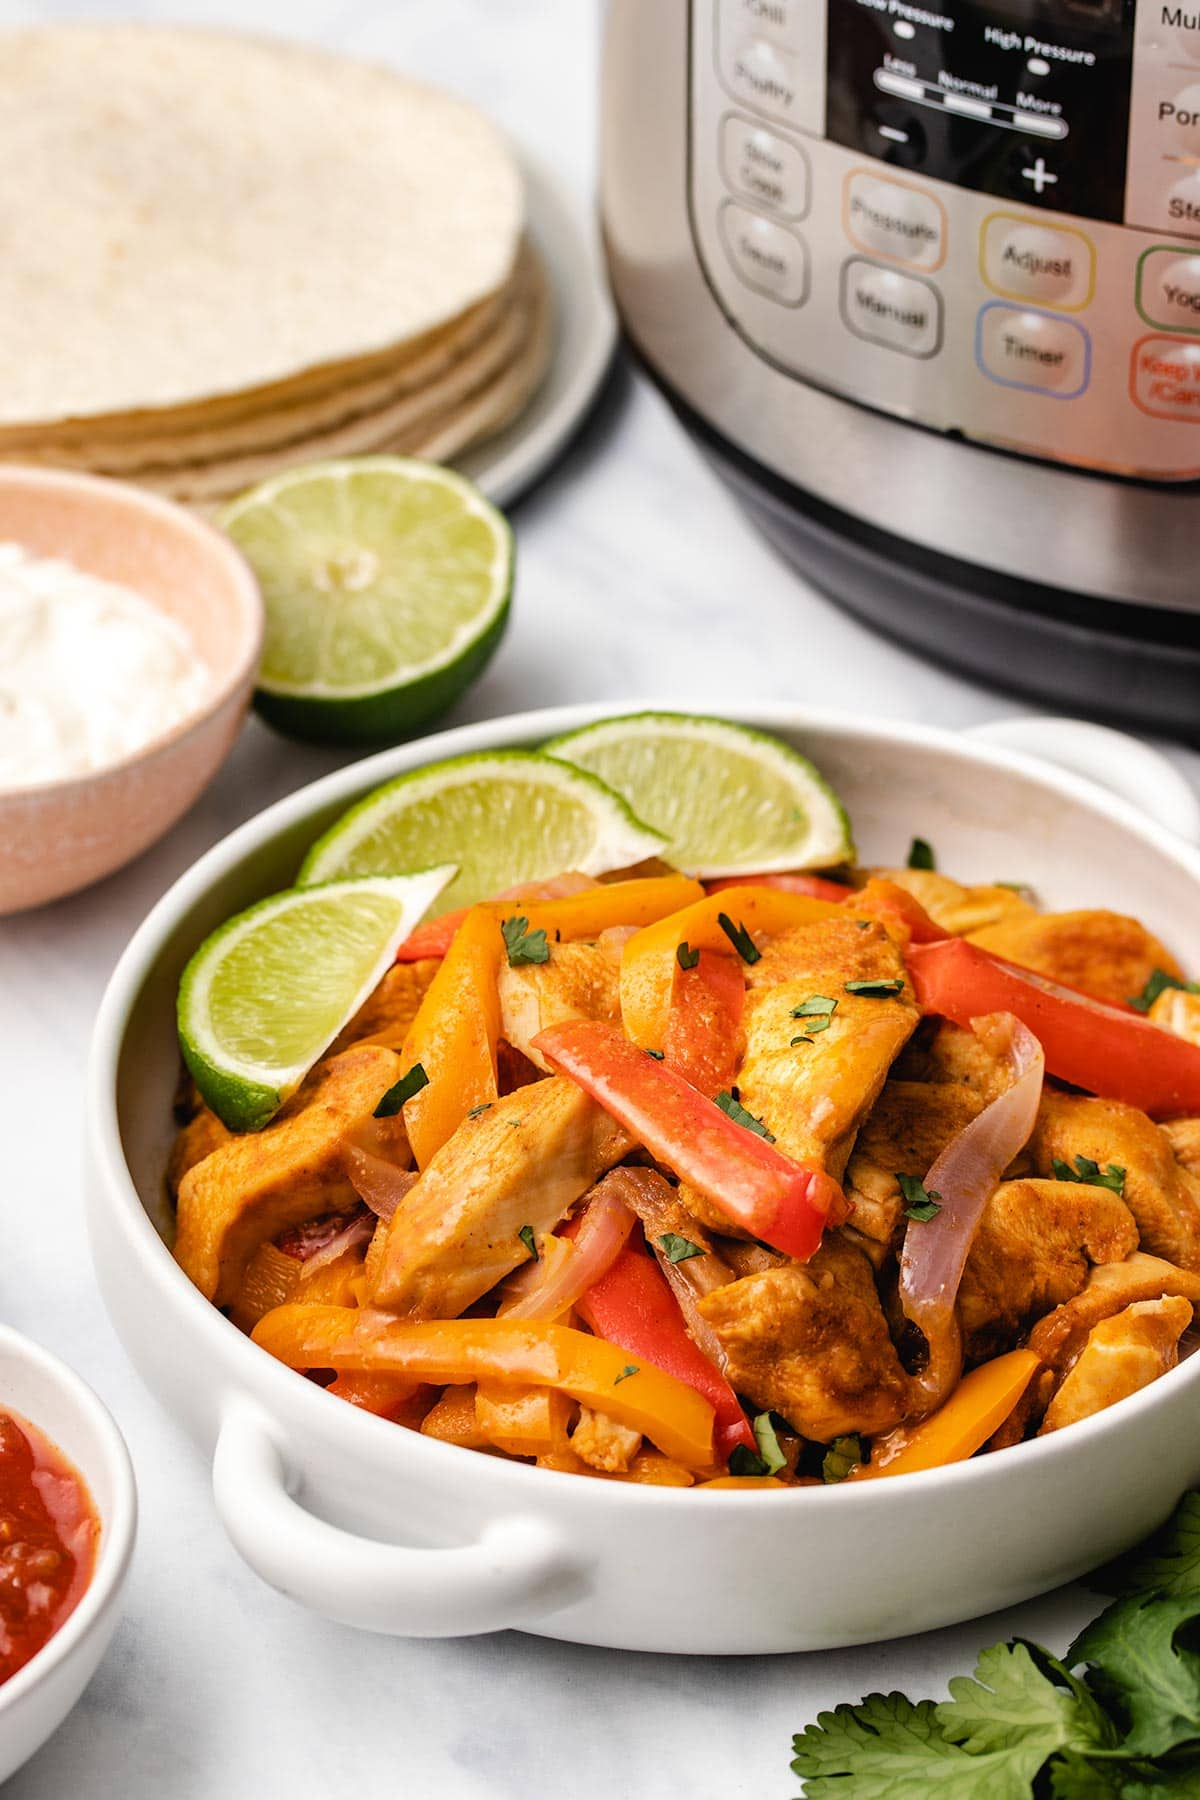 Instant Pot Chicken Fajitas in a white serving bowl with handles, garnished with lime and chopped cilantro.